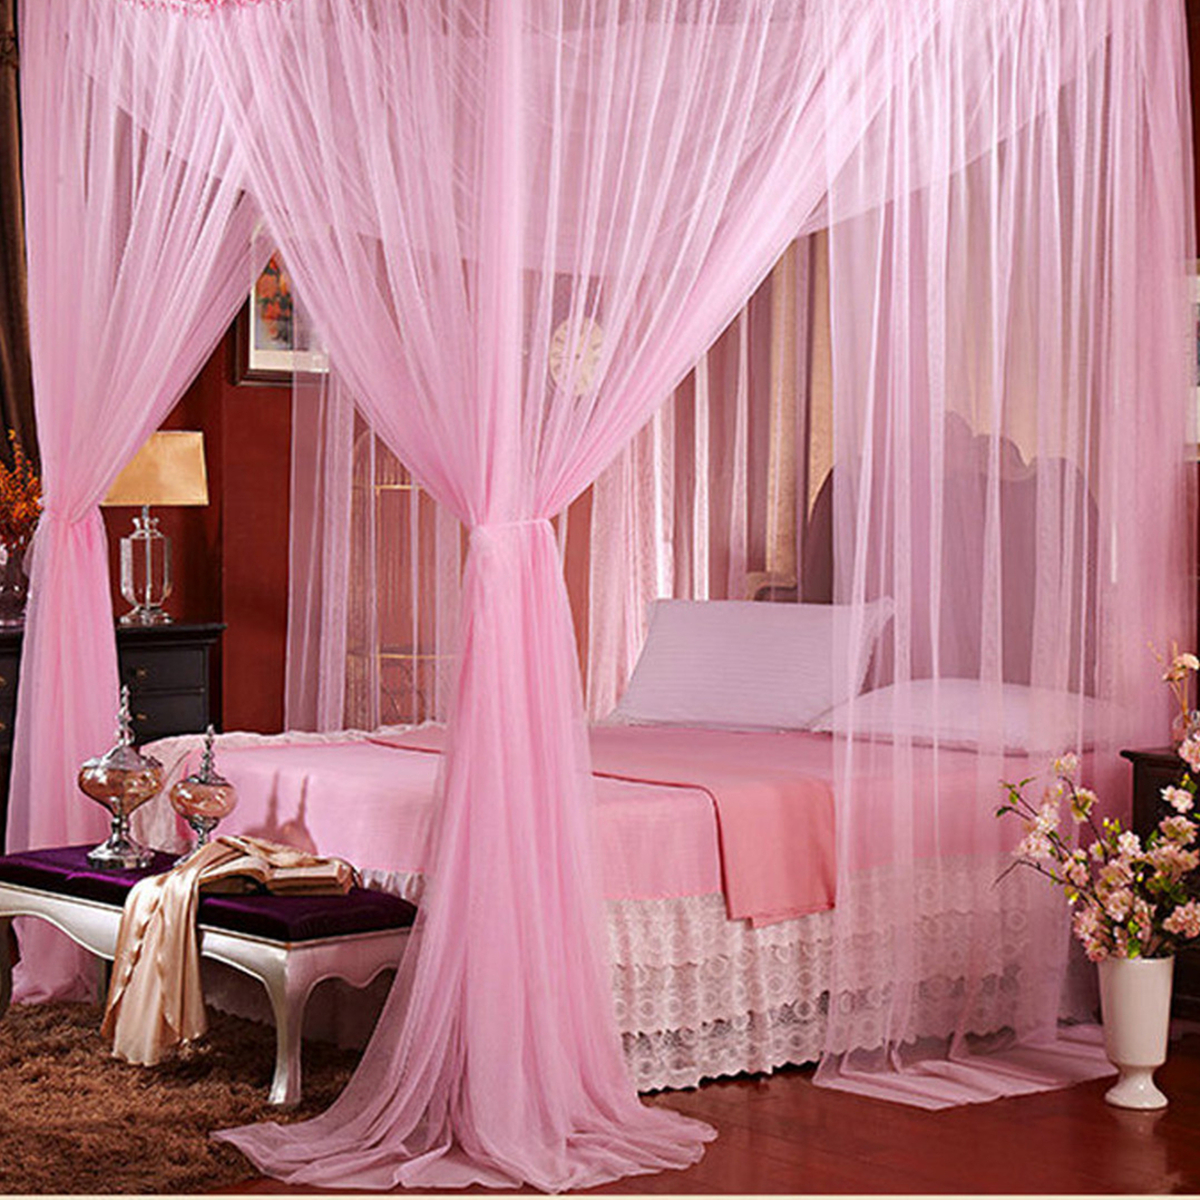 4 Corner Mosquito Net Mesh Canopy Insect Queen King Size Netting Curtain Dome 190X210X240CM